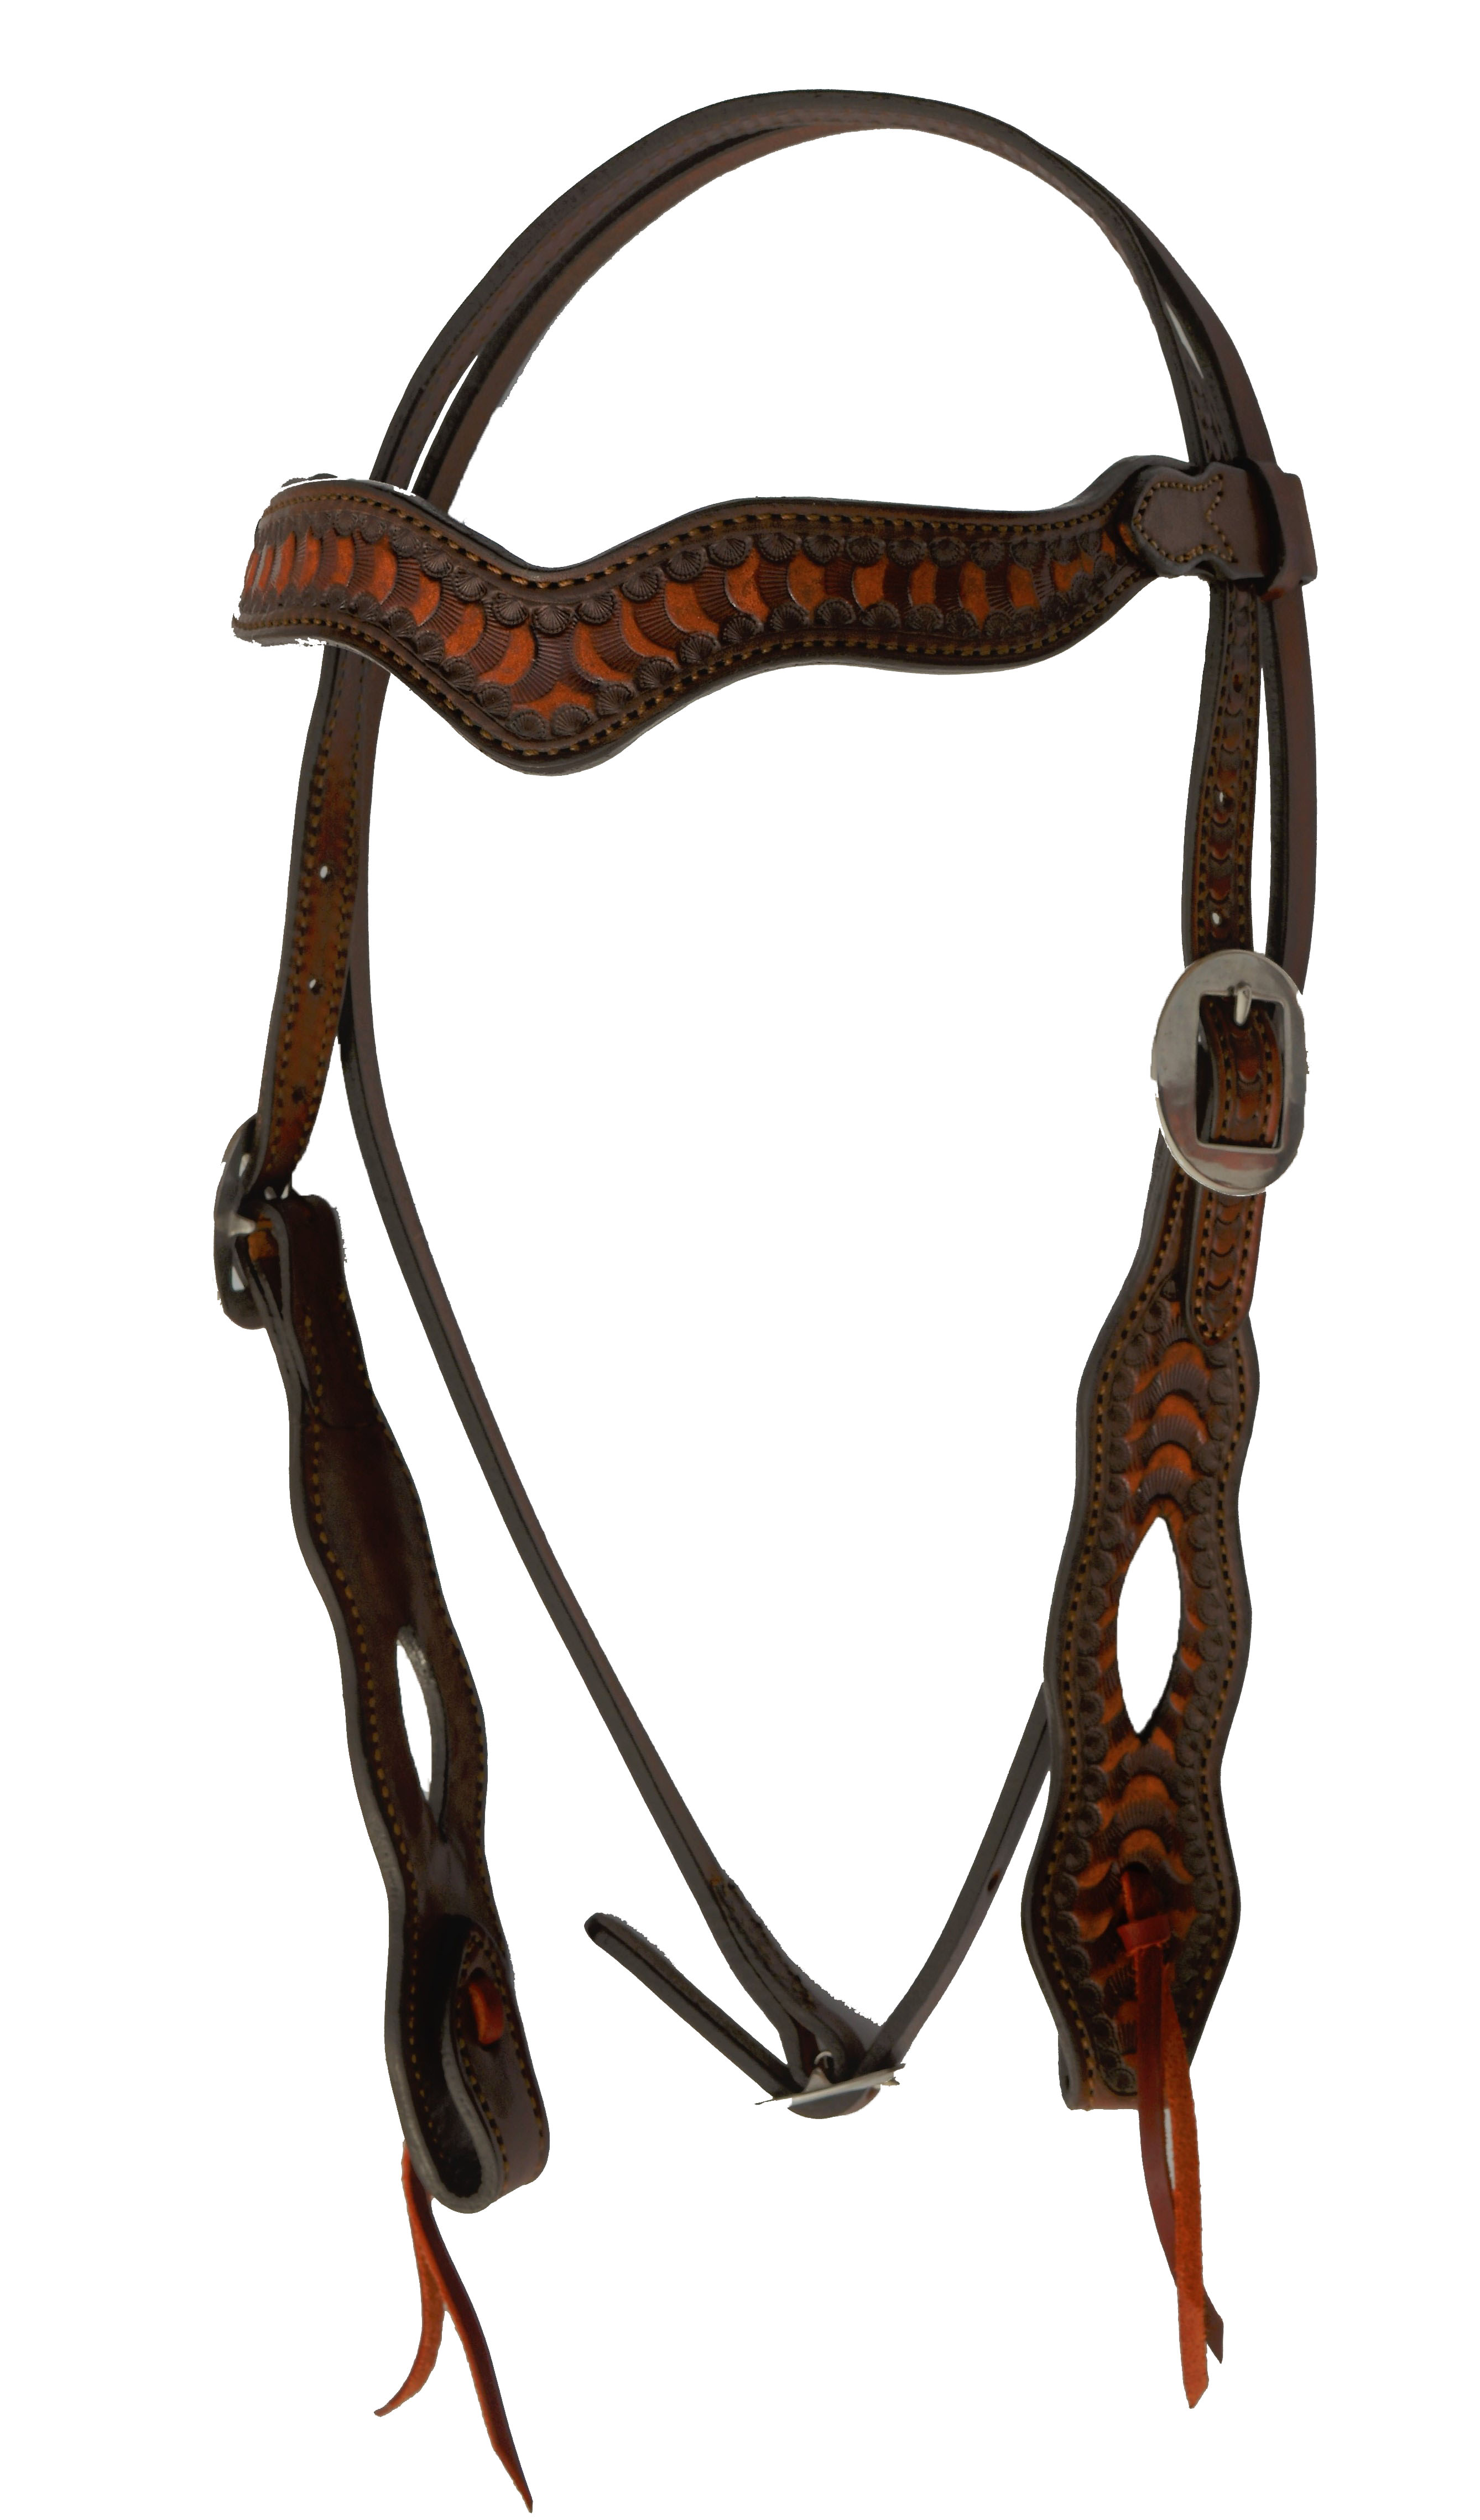 2417 WAVE STYLE HEADSTALL WITH WAVE TOOLING